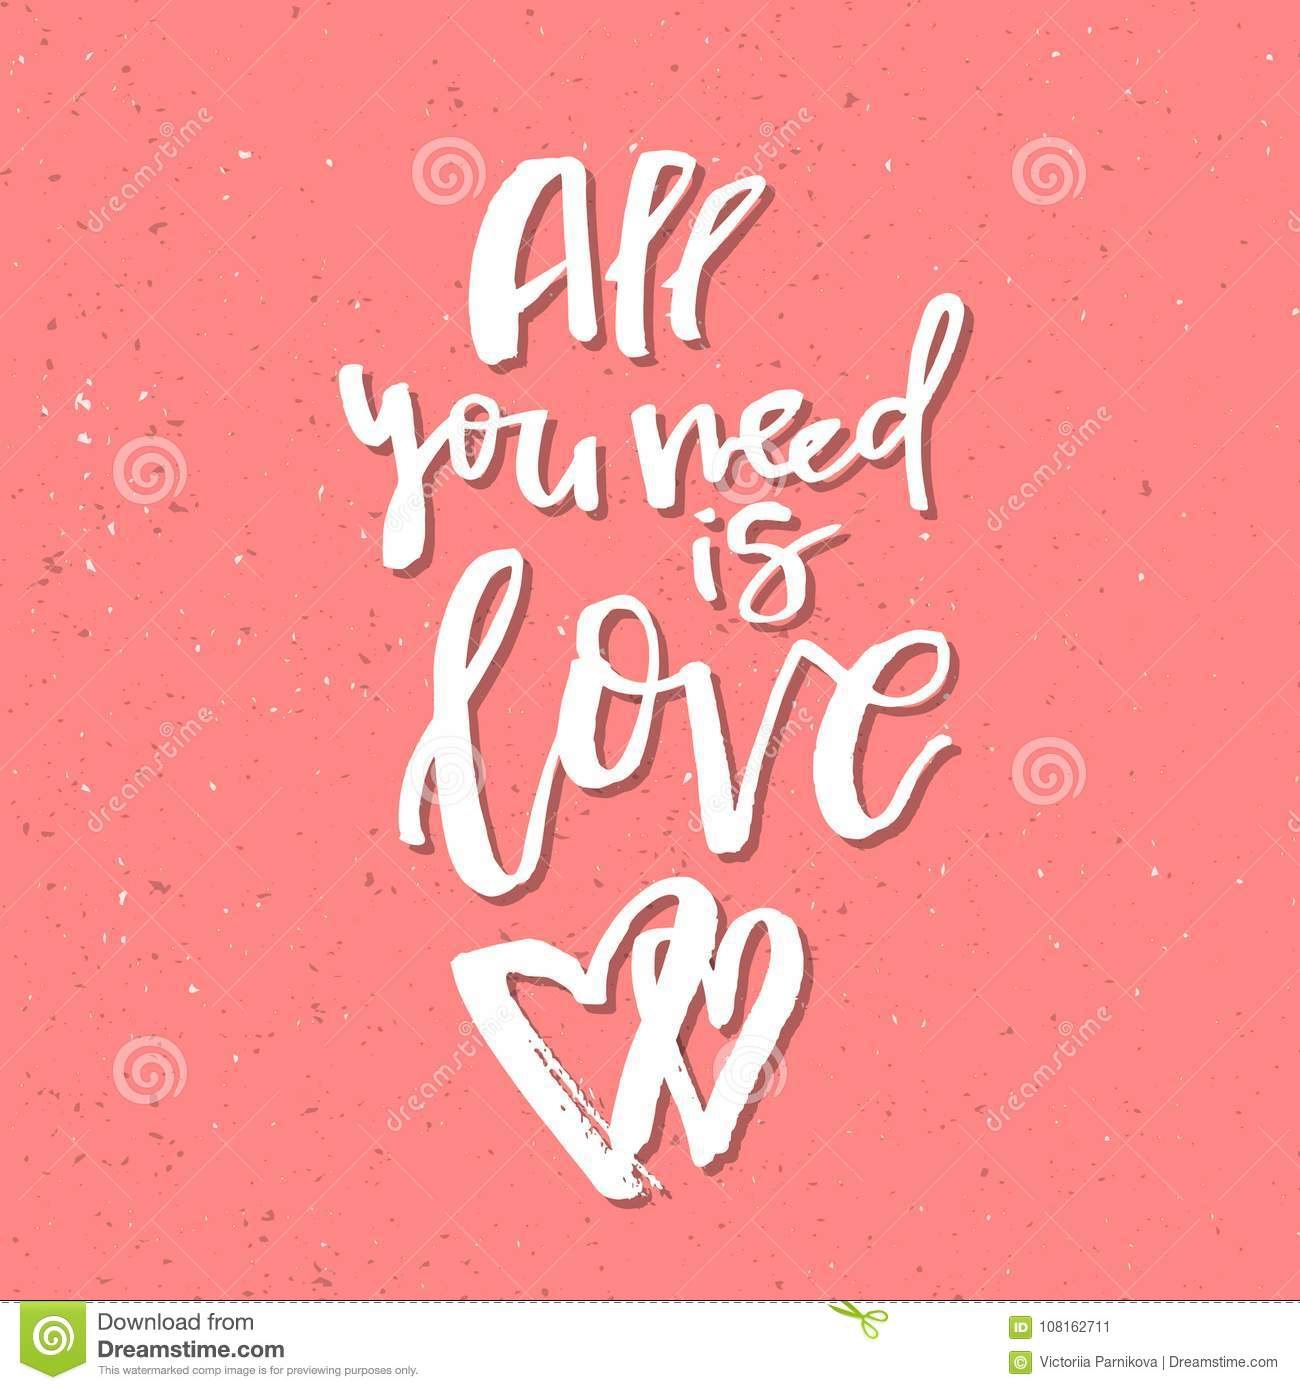 All you need is love inspirational valentines day romantic han download all you need is love inspirational valentines day romantic han stock vector illustration m4hsunfo